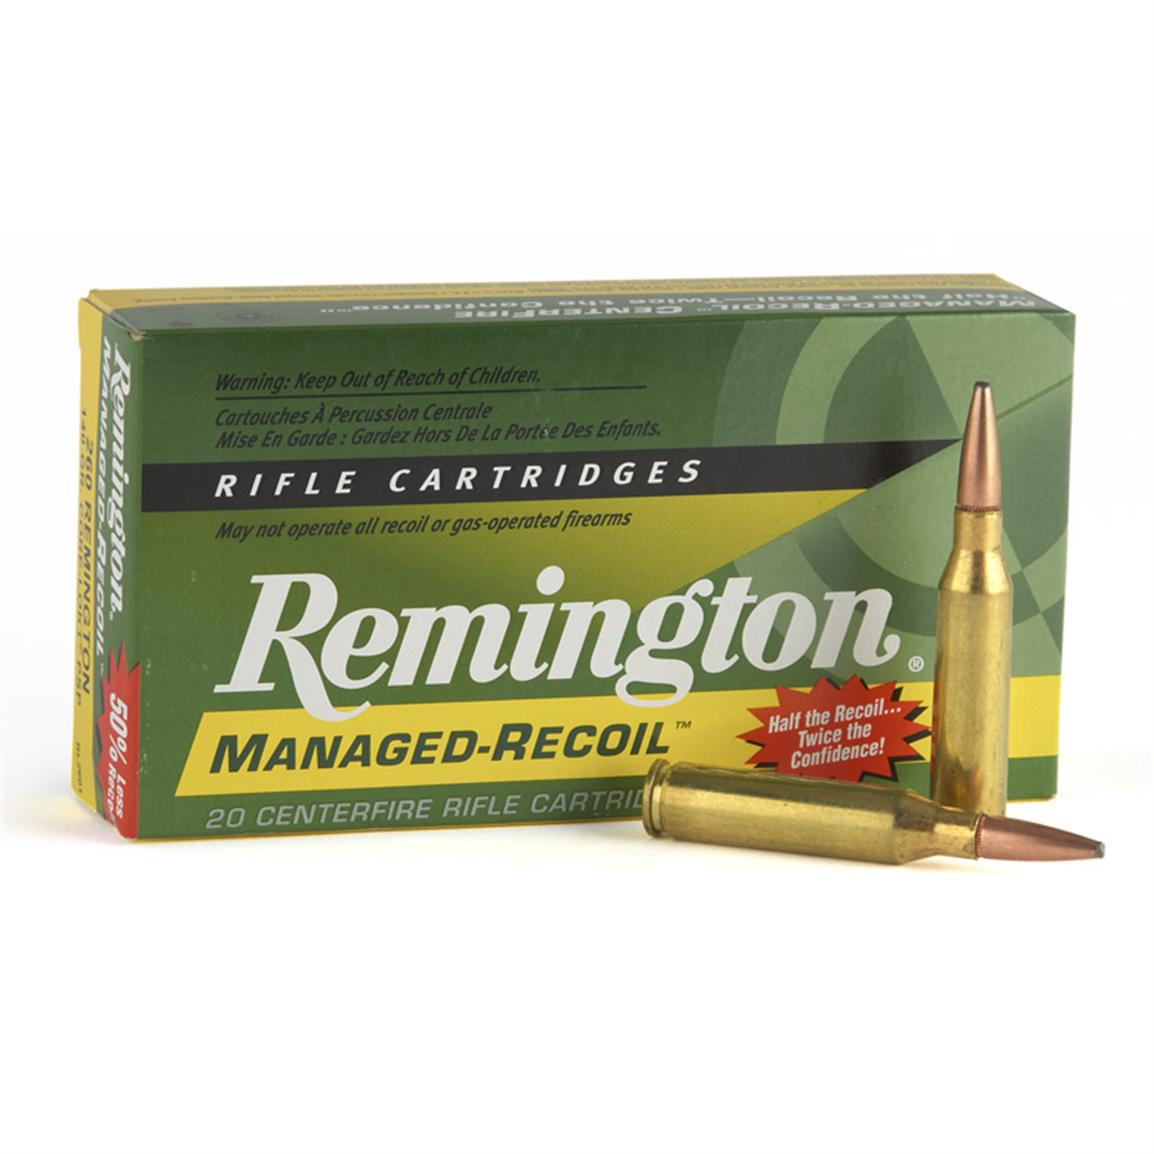 Remington, Managed Recoil Rifle, .300 Remington Ultra Magnum, Core-Lokt PSP, 150 Grain, 20 Rounds